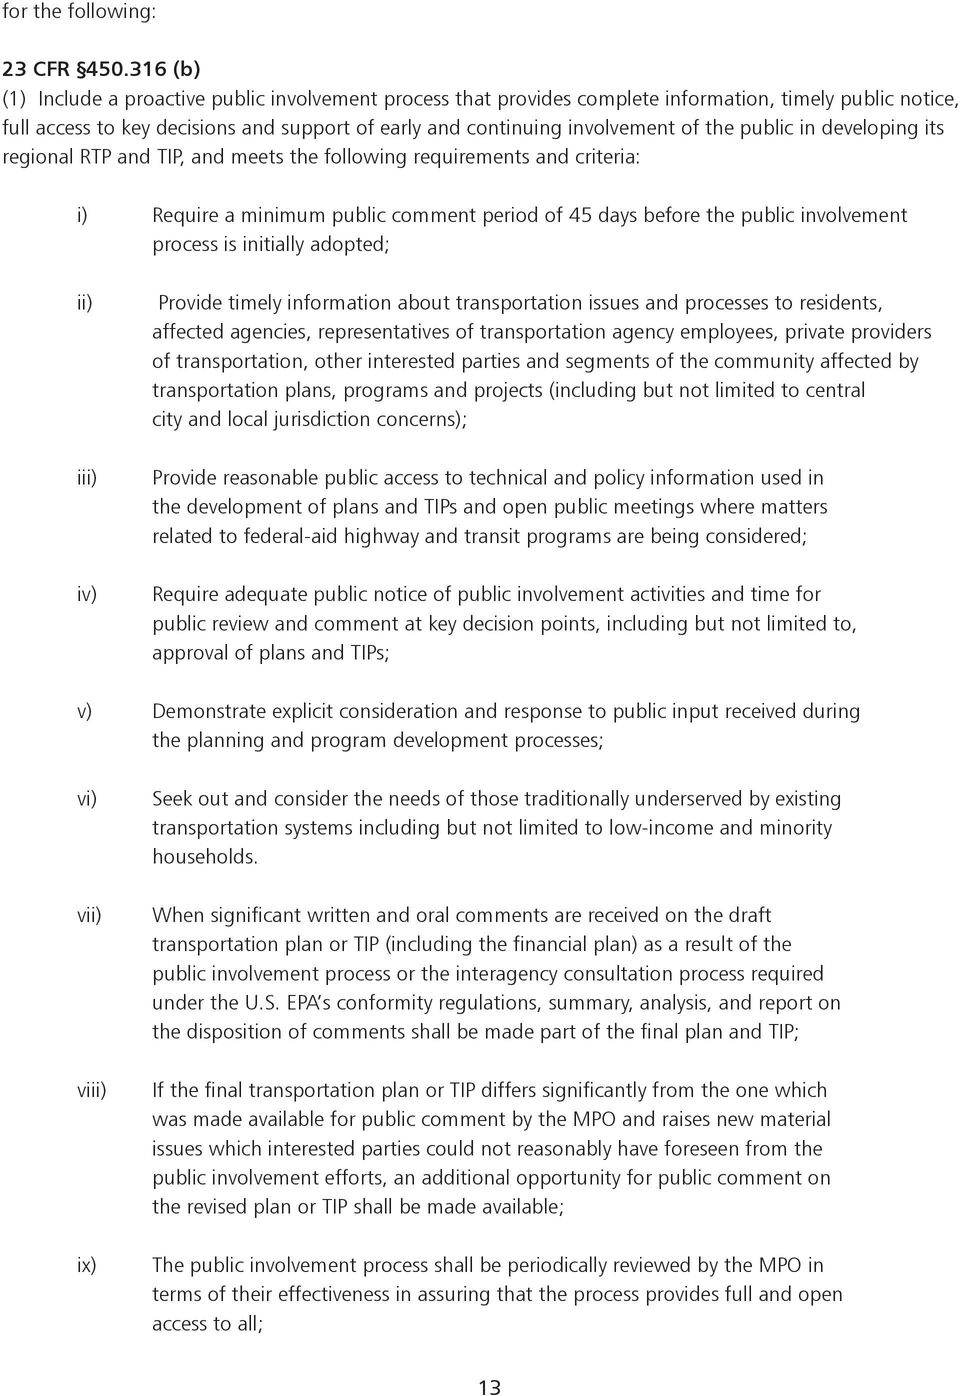 the public in developing its regional RTP and TIP, and meets the following requirements and criteria: i) Require a minimum public comment period of 45 days before the public involvement process is